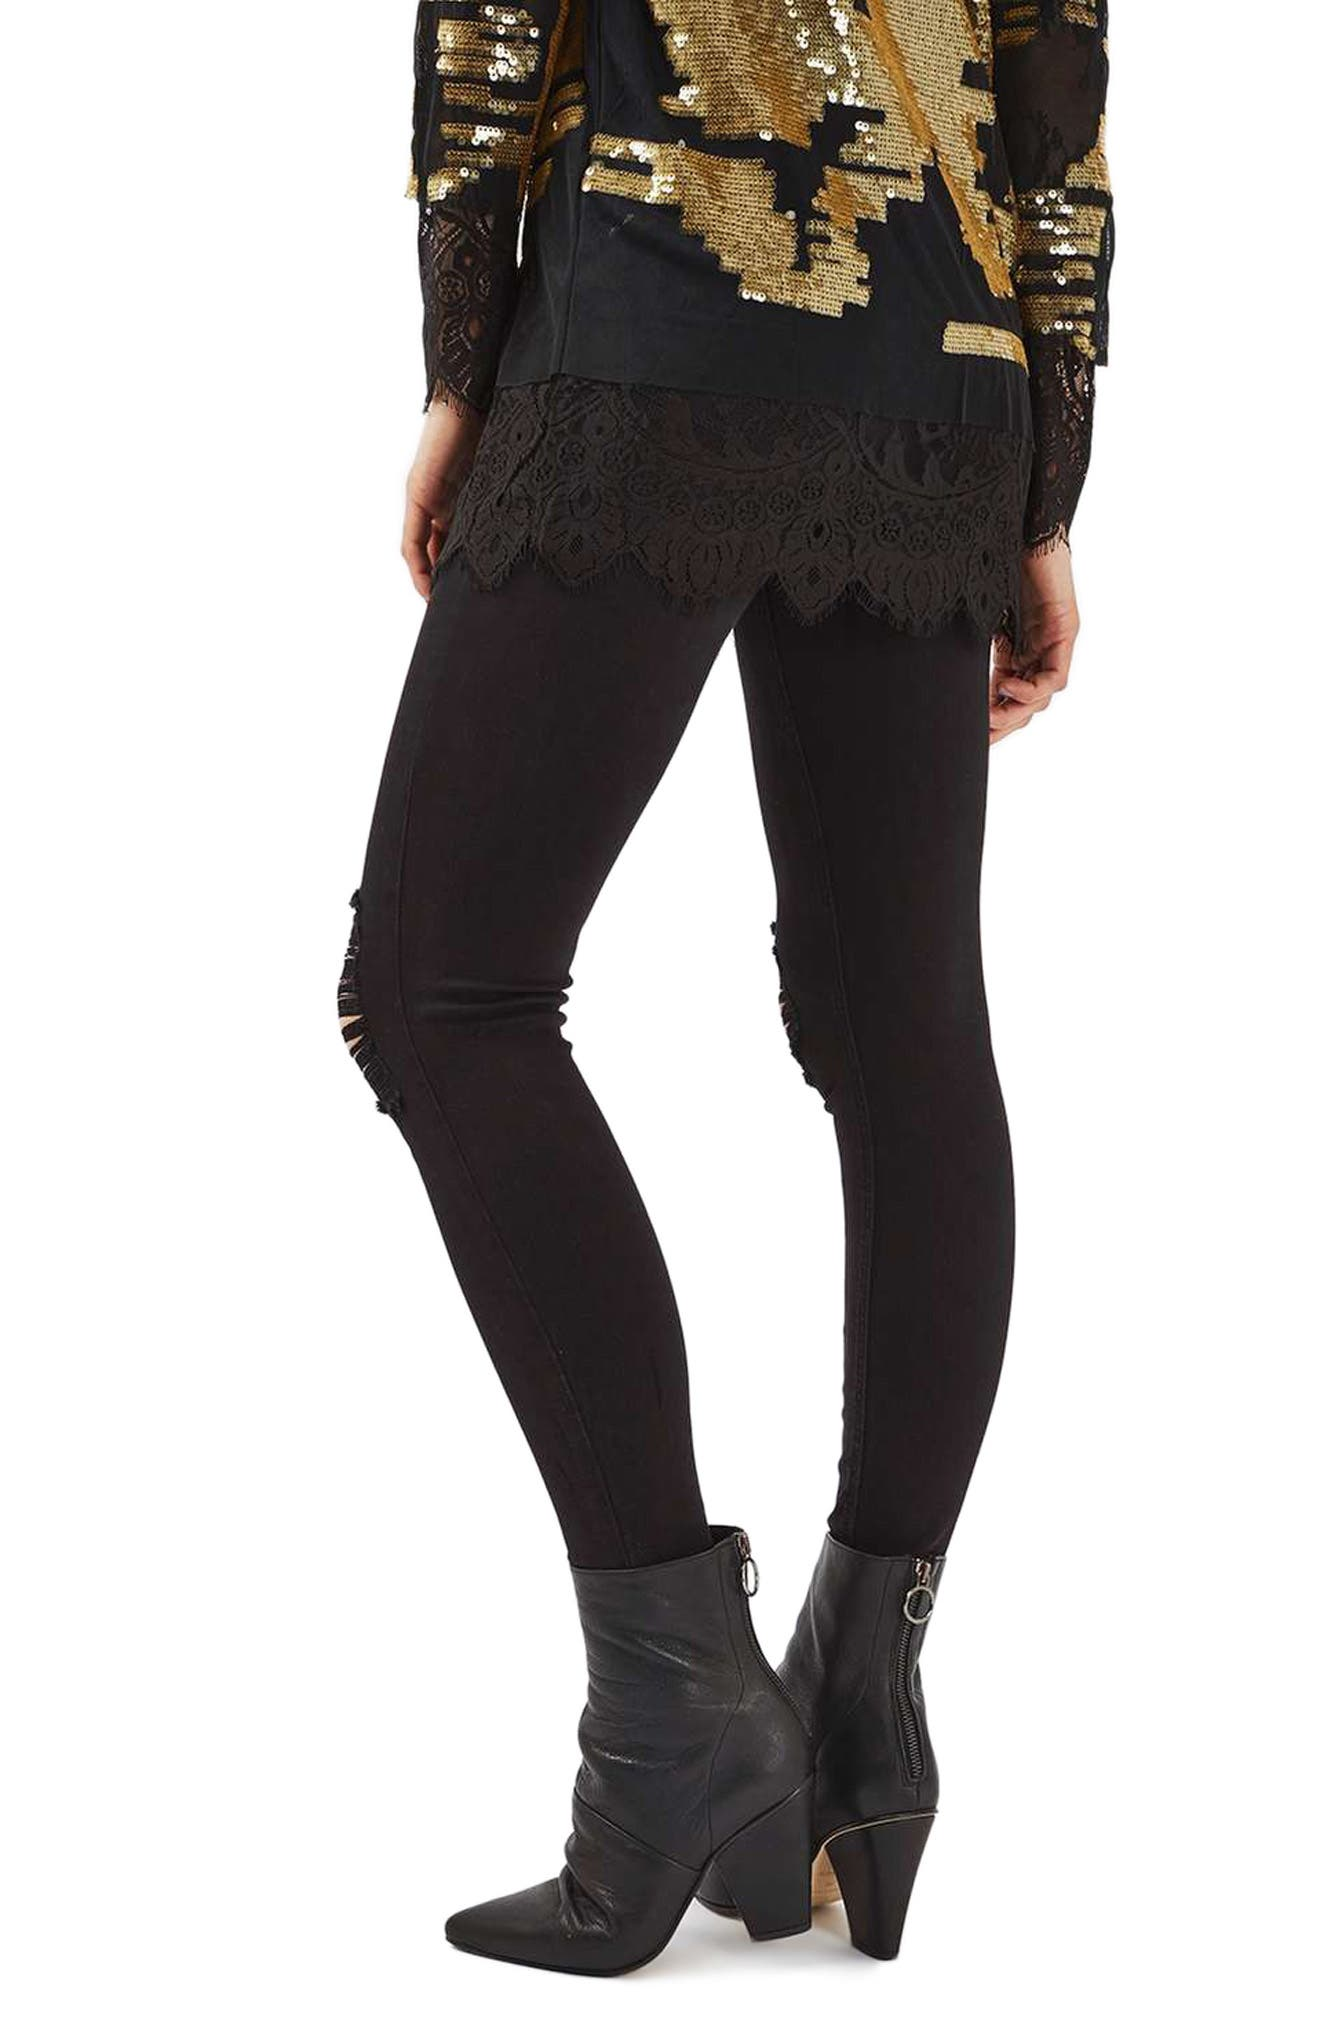 TOPSHOP, Ripped High Waist Ankle Skinny Jeans, Alternate thumbnail 4, color, 001